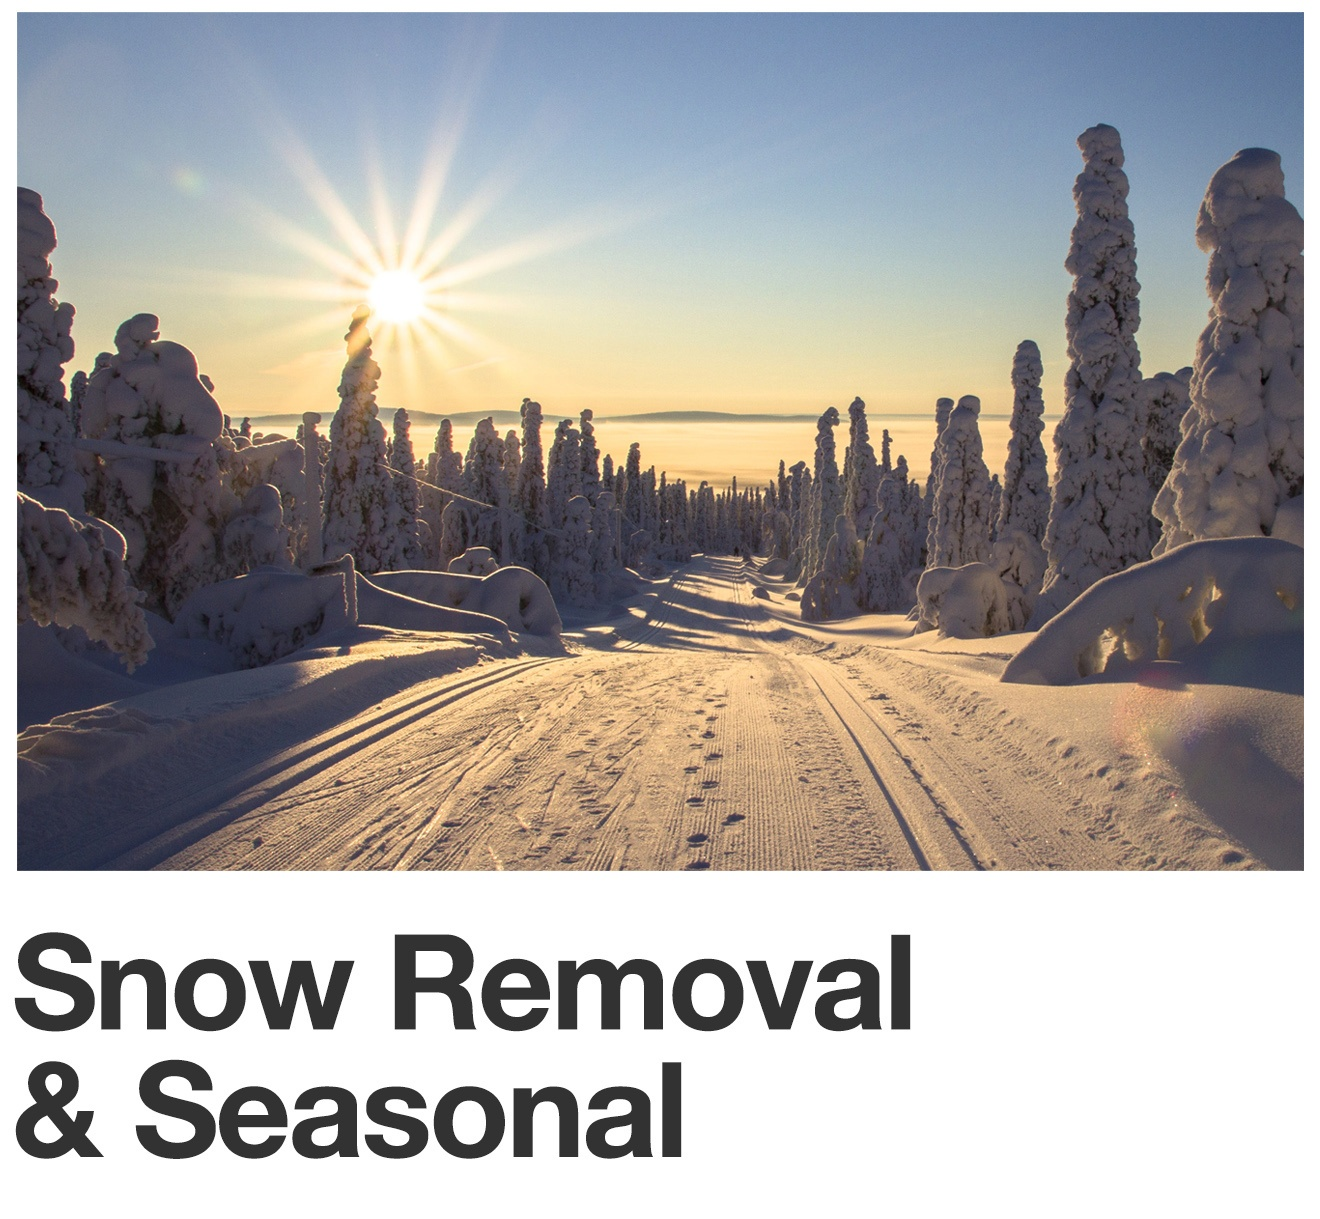 Snow Removal & Seasonal